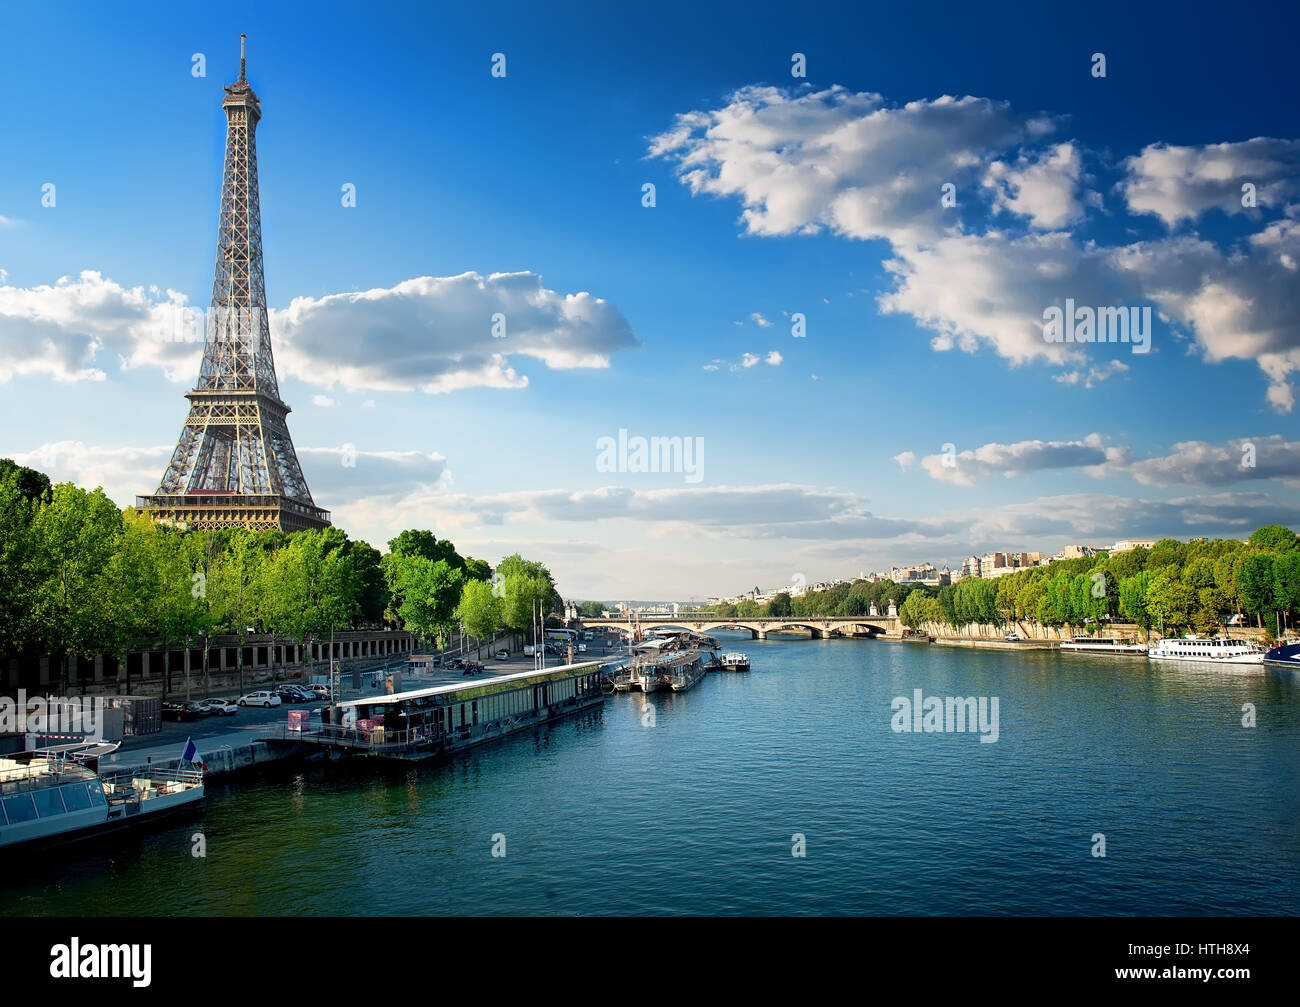 River Seine and Eiffel Tower in Paris, France - Stock Image